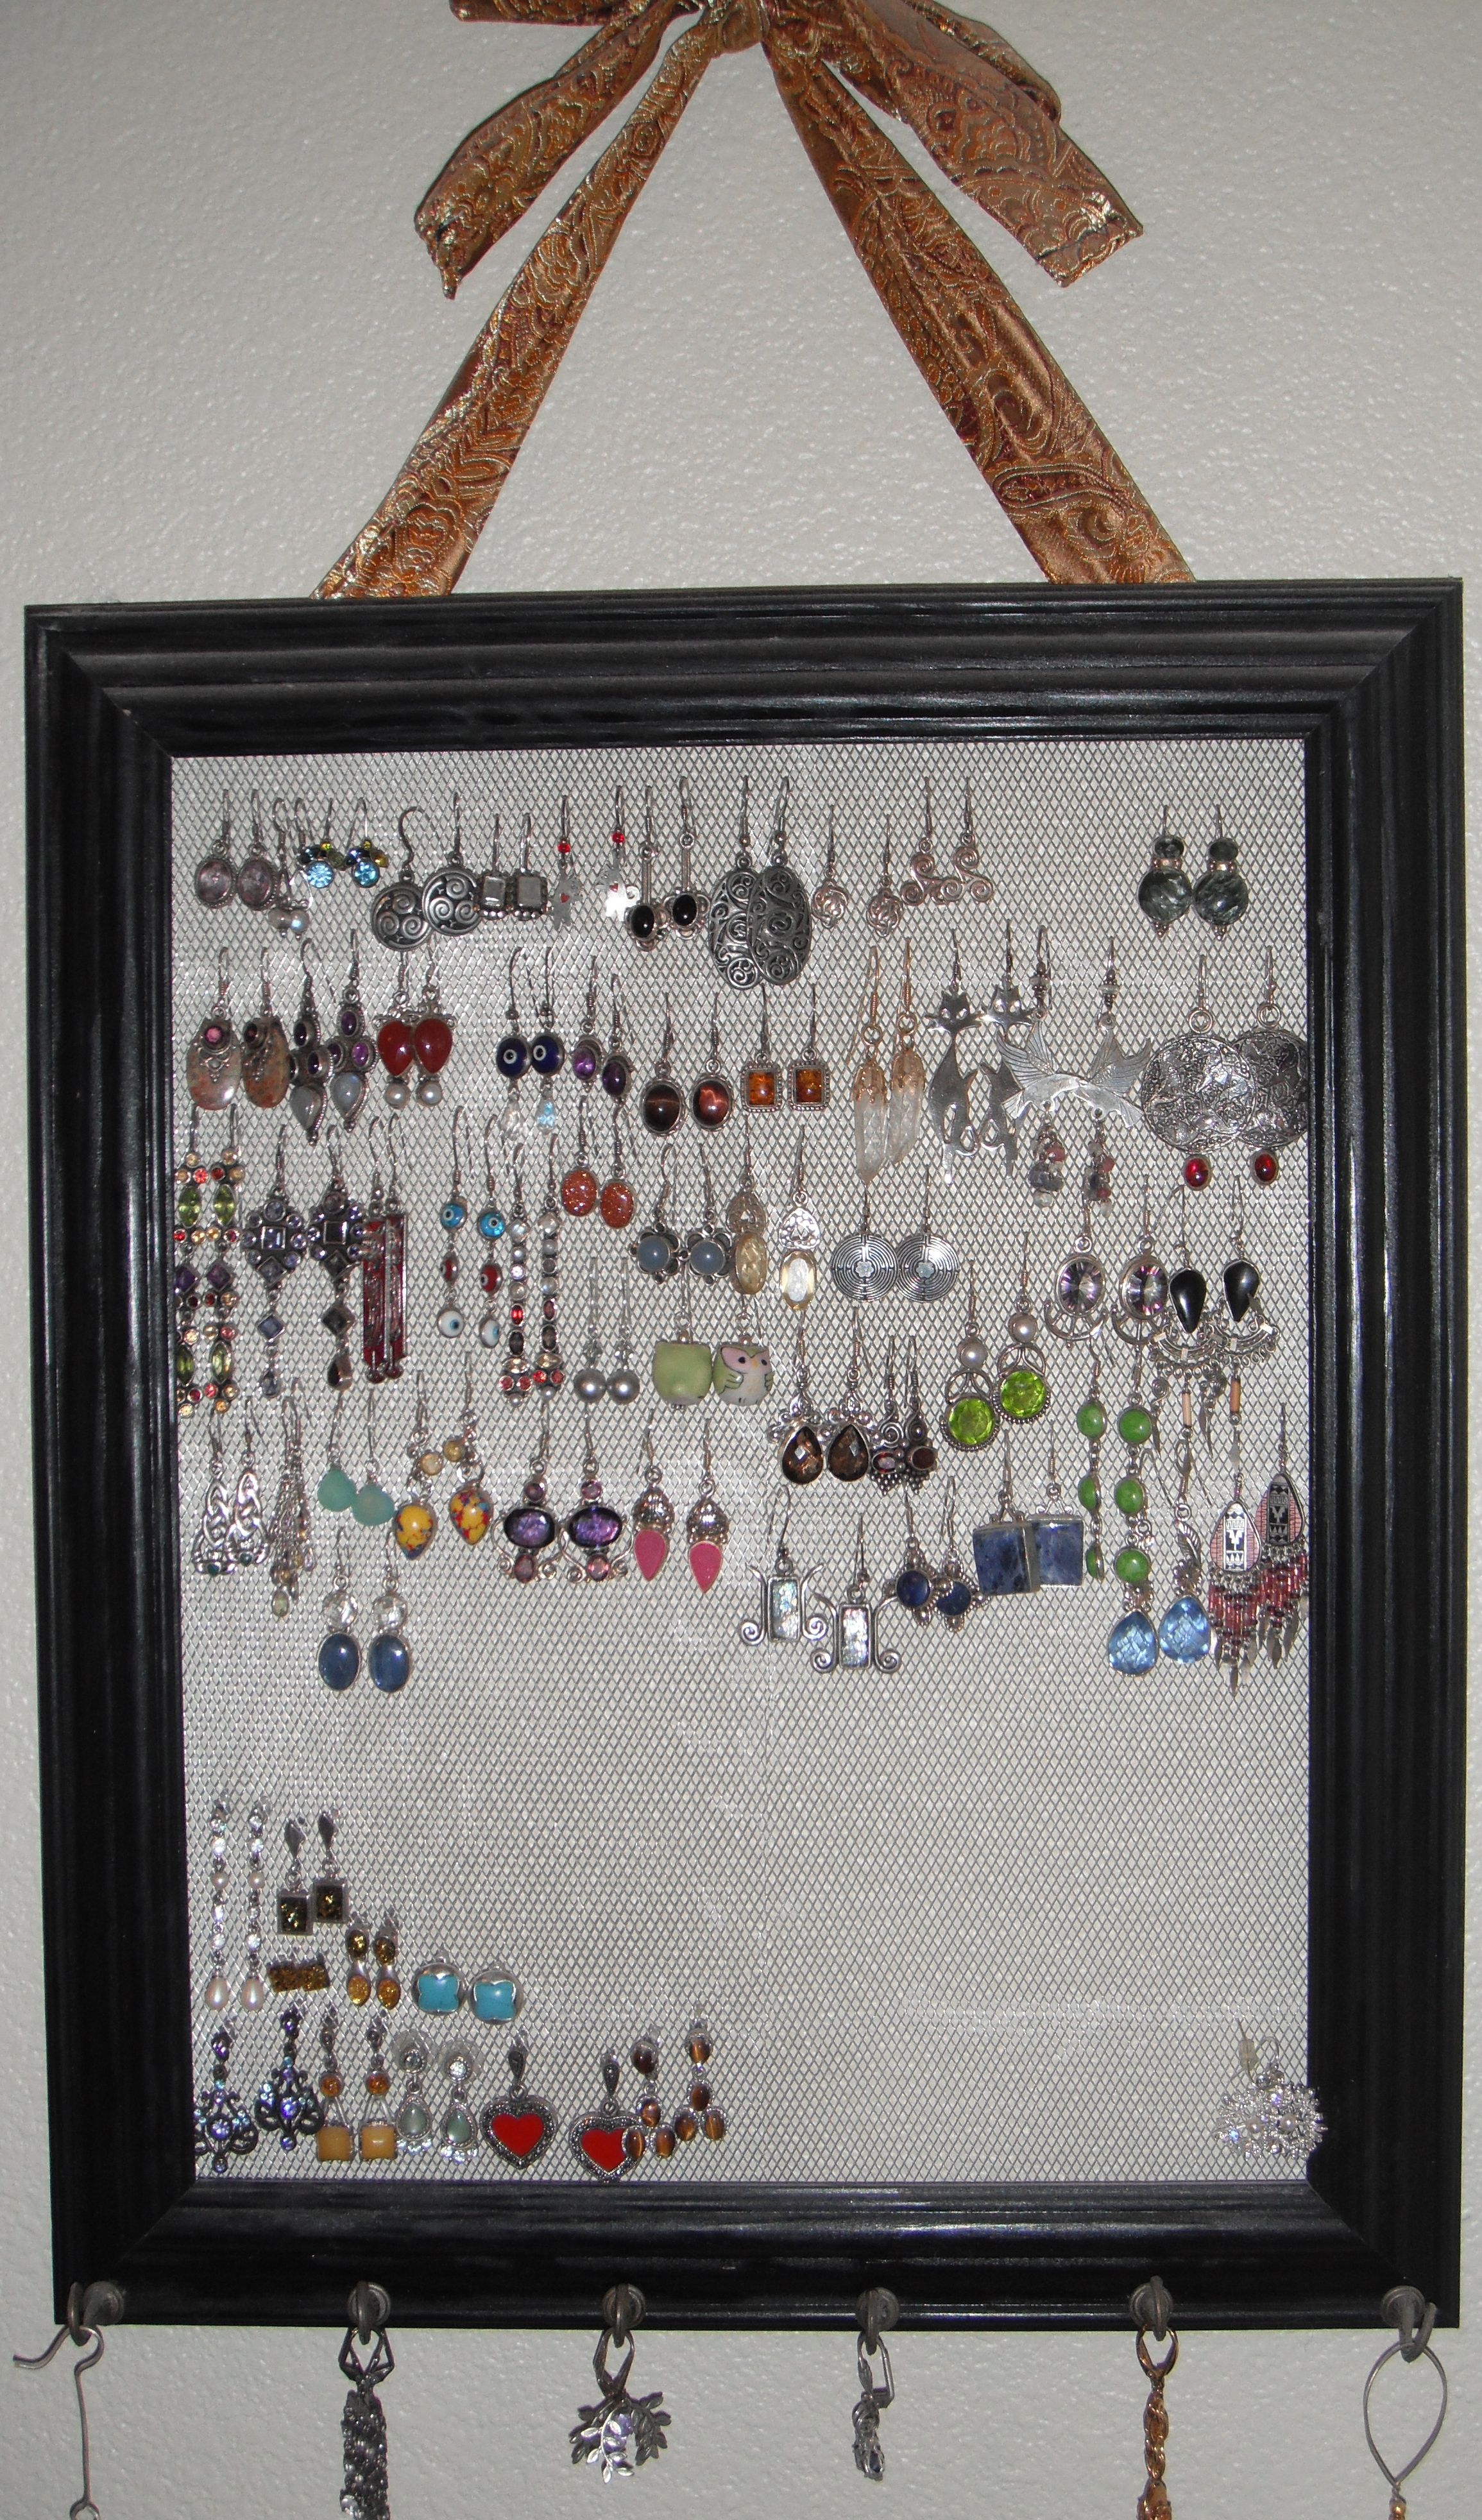 Mesh Earring Holder : earring, holder, Earring, Holder:, Remove, Glass, Picture, Frame., Sculptural, Craft, Store., Frame, Crafts,, Crafts